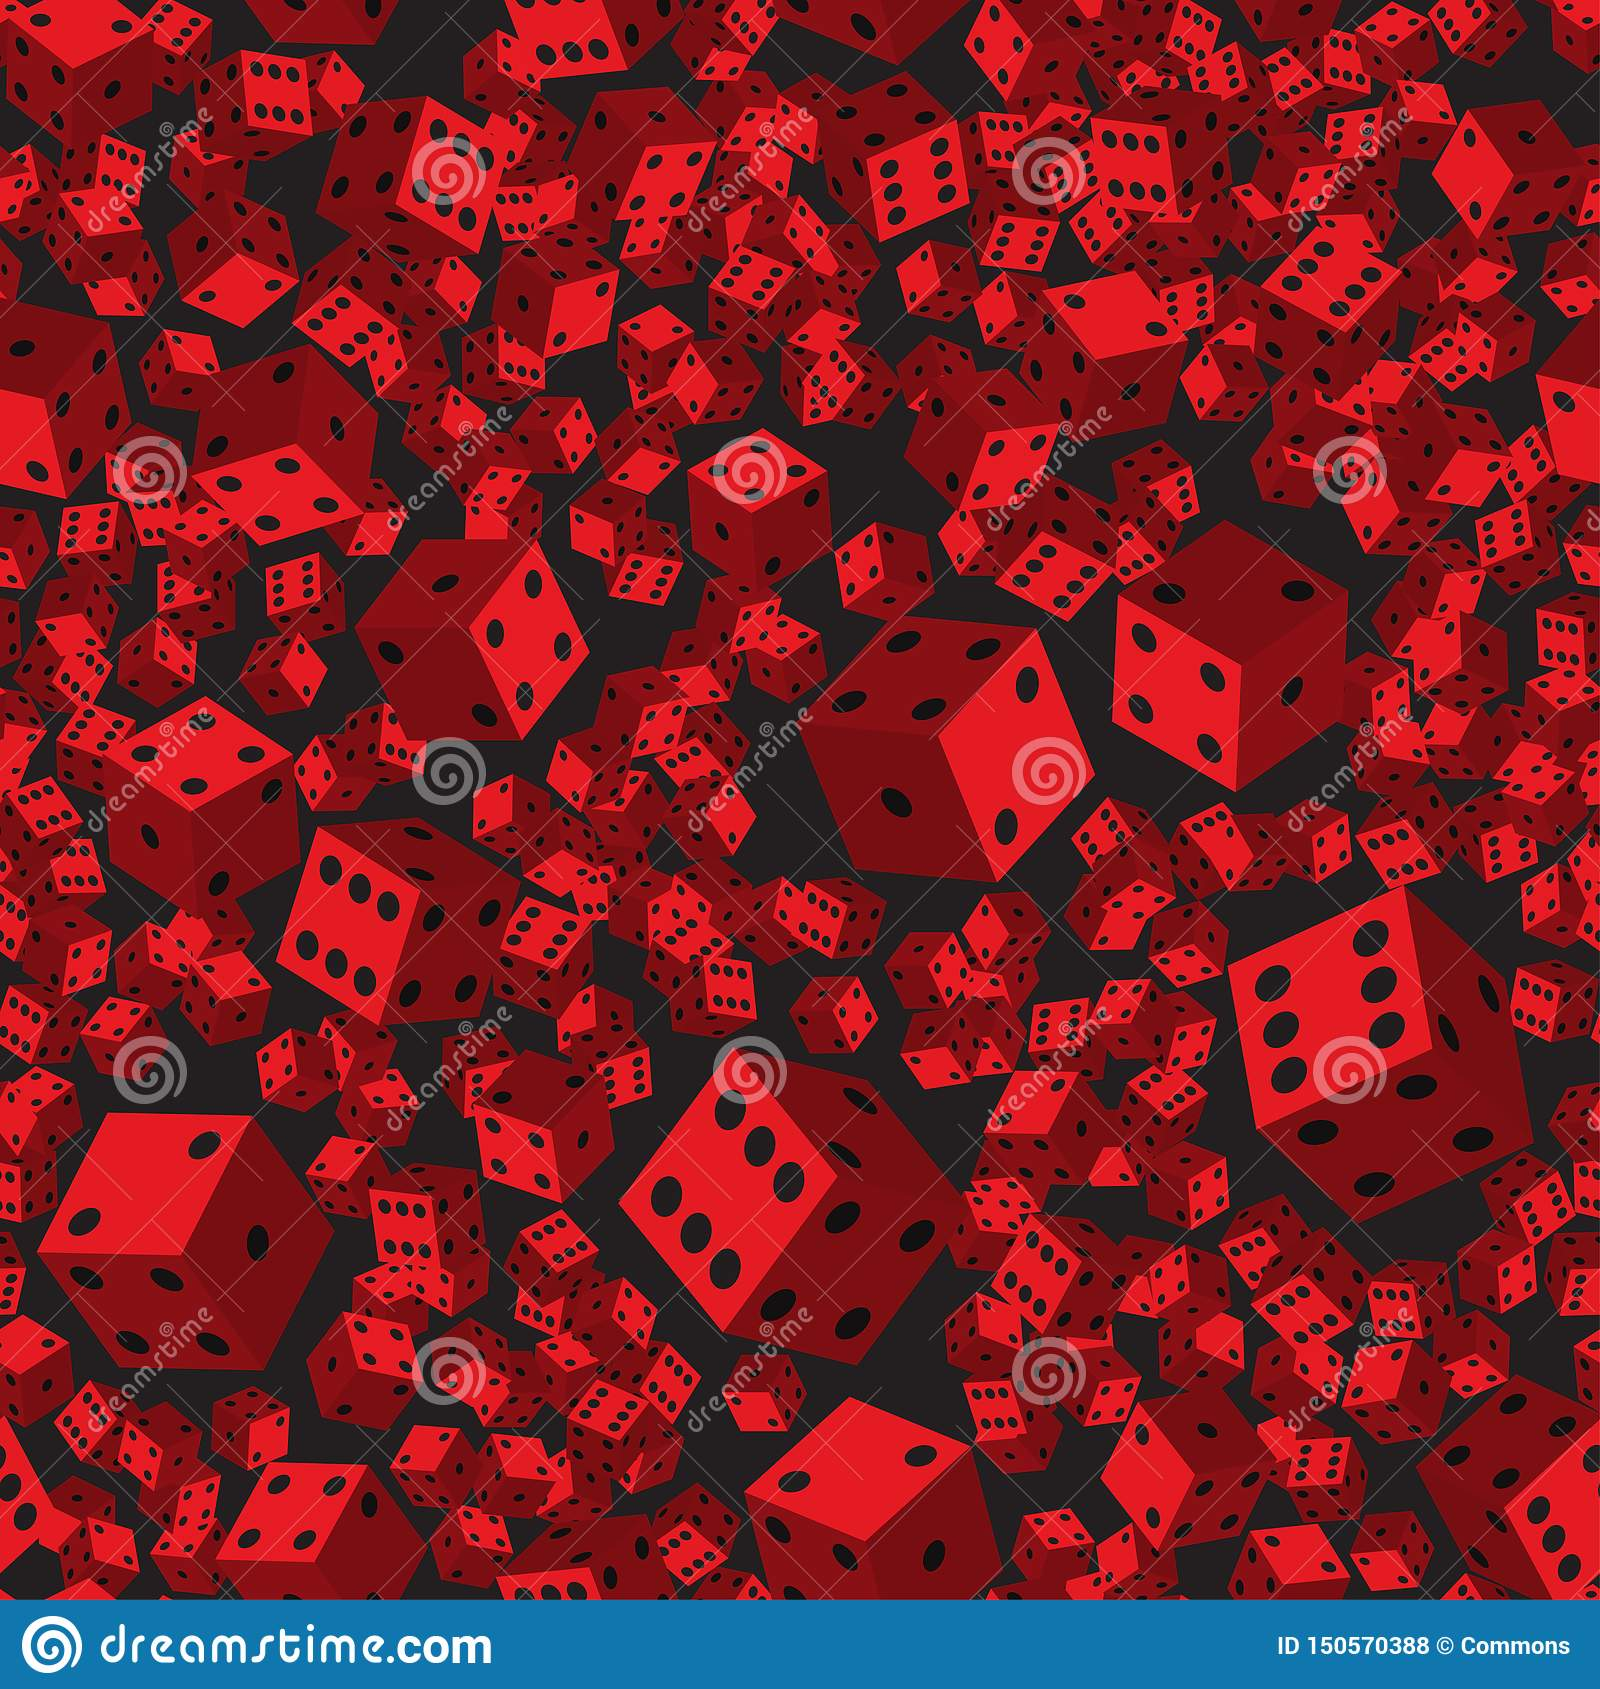 Red Dice Seamless Pattern, 3D illustration